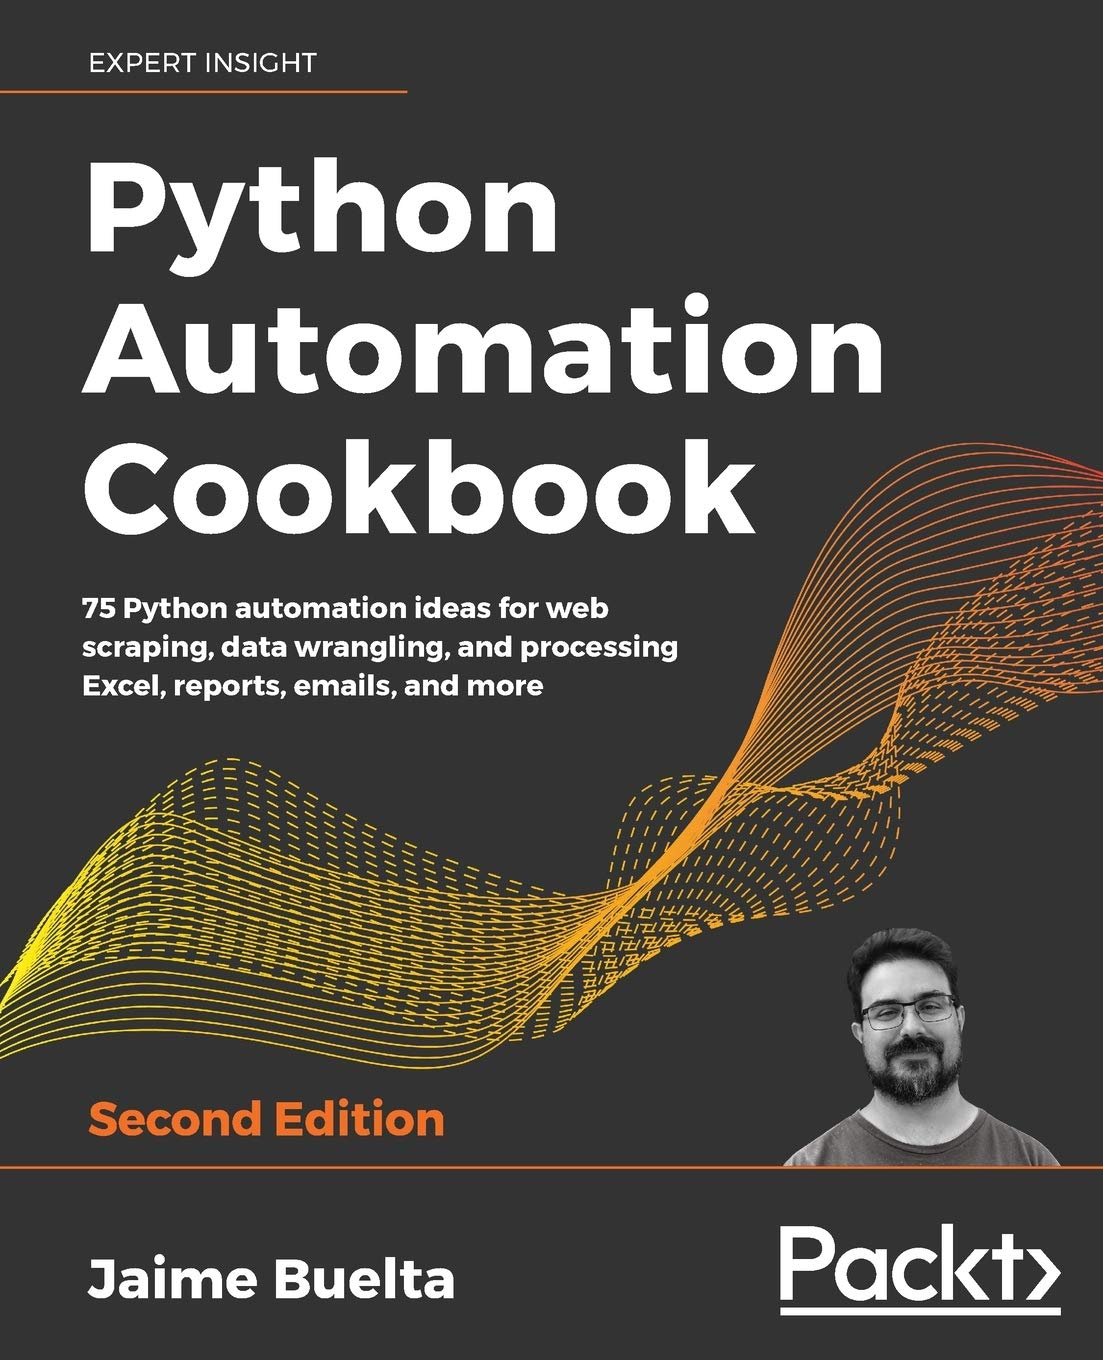 Image OfPython Automation Cookbook: 75 Python Automation Ideas For Web Scraping, Data Wrangling, And Processing Excel, Reports, Em...